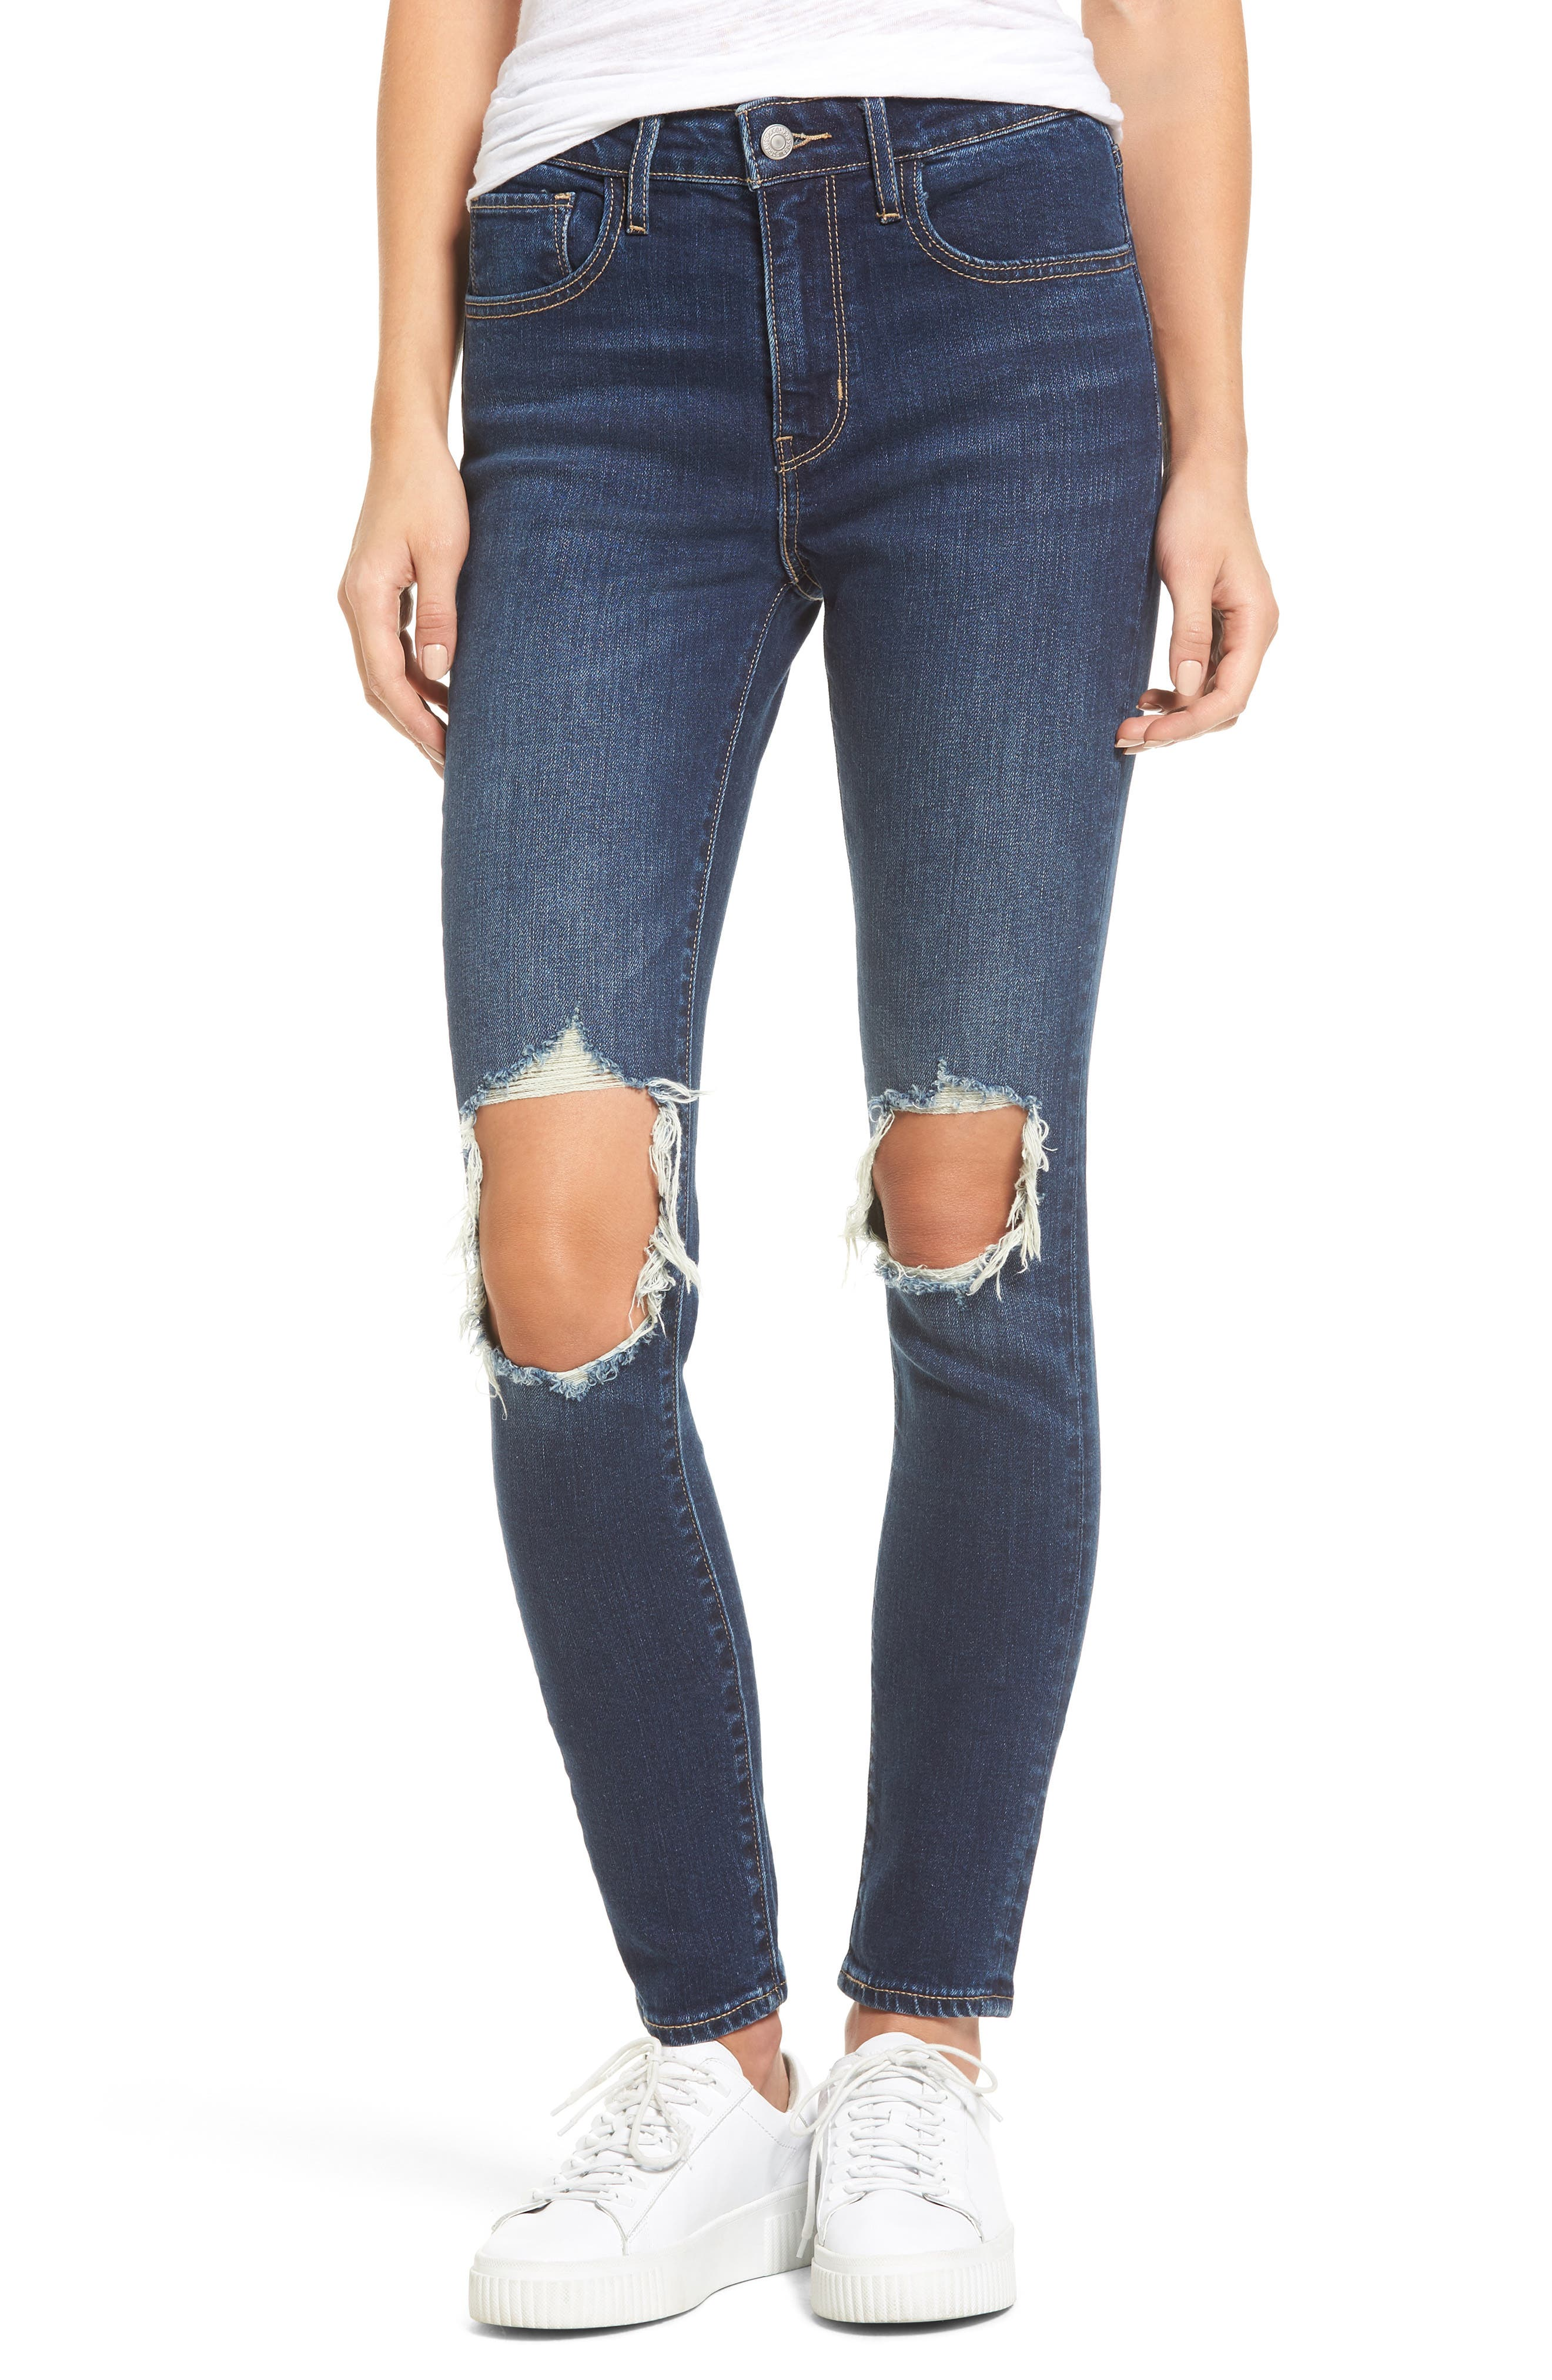 Main Image - Levi's® 721 Ripped High Waist Skinny Jeans (Rough Day)